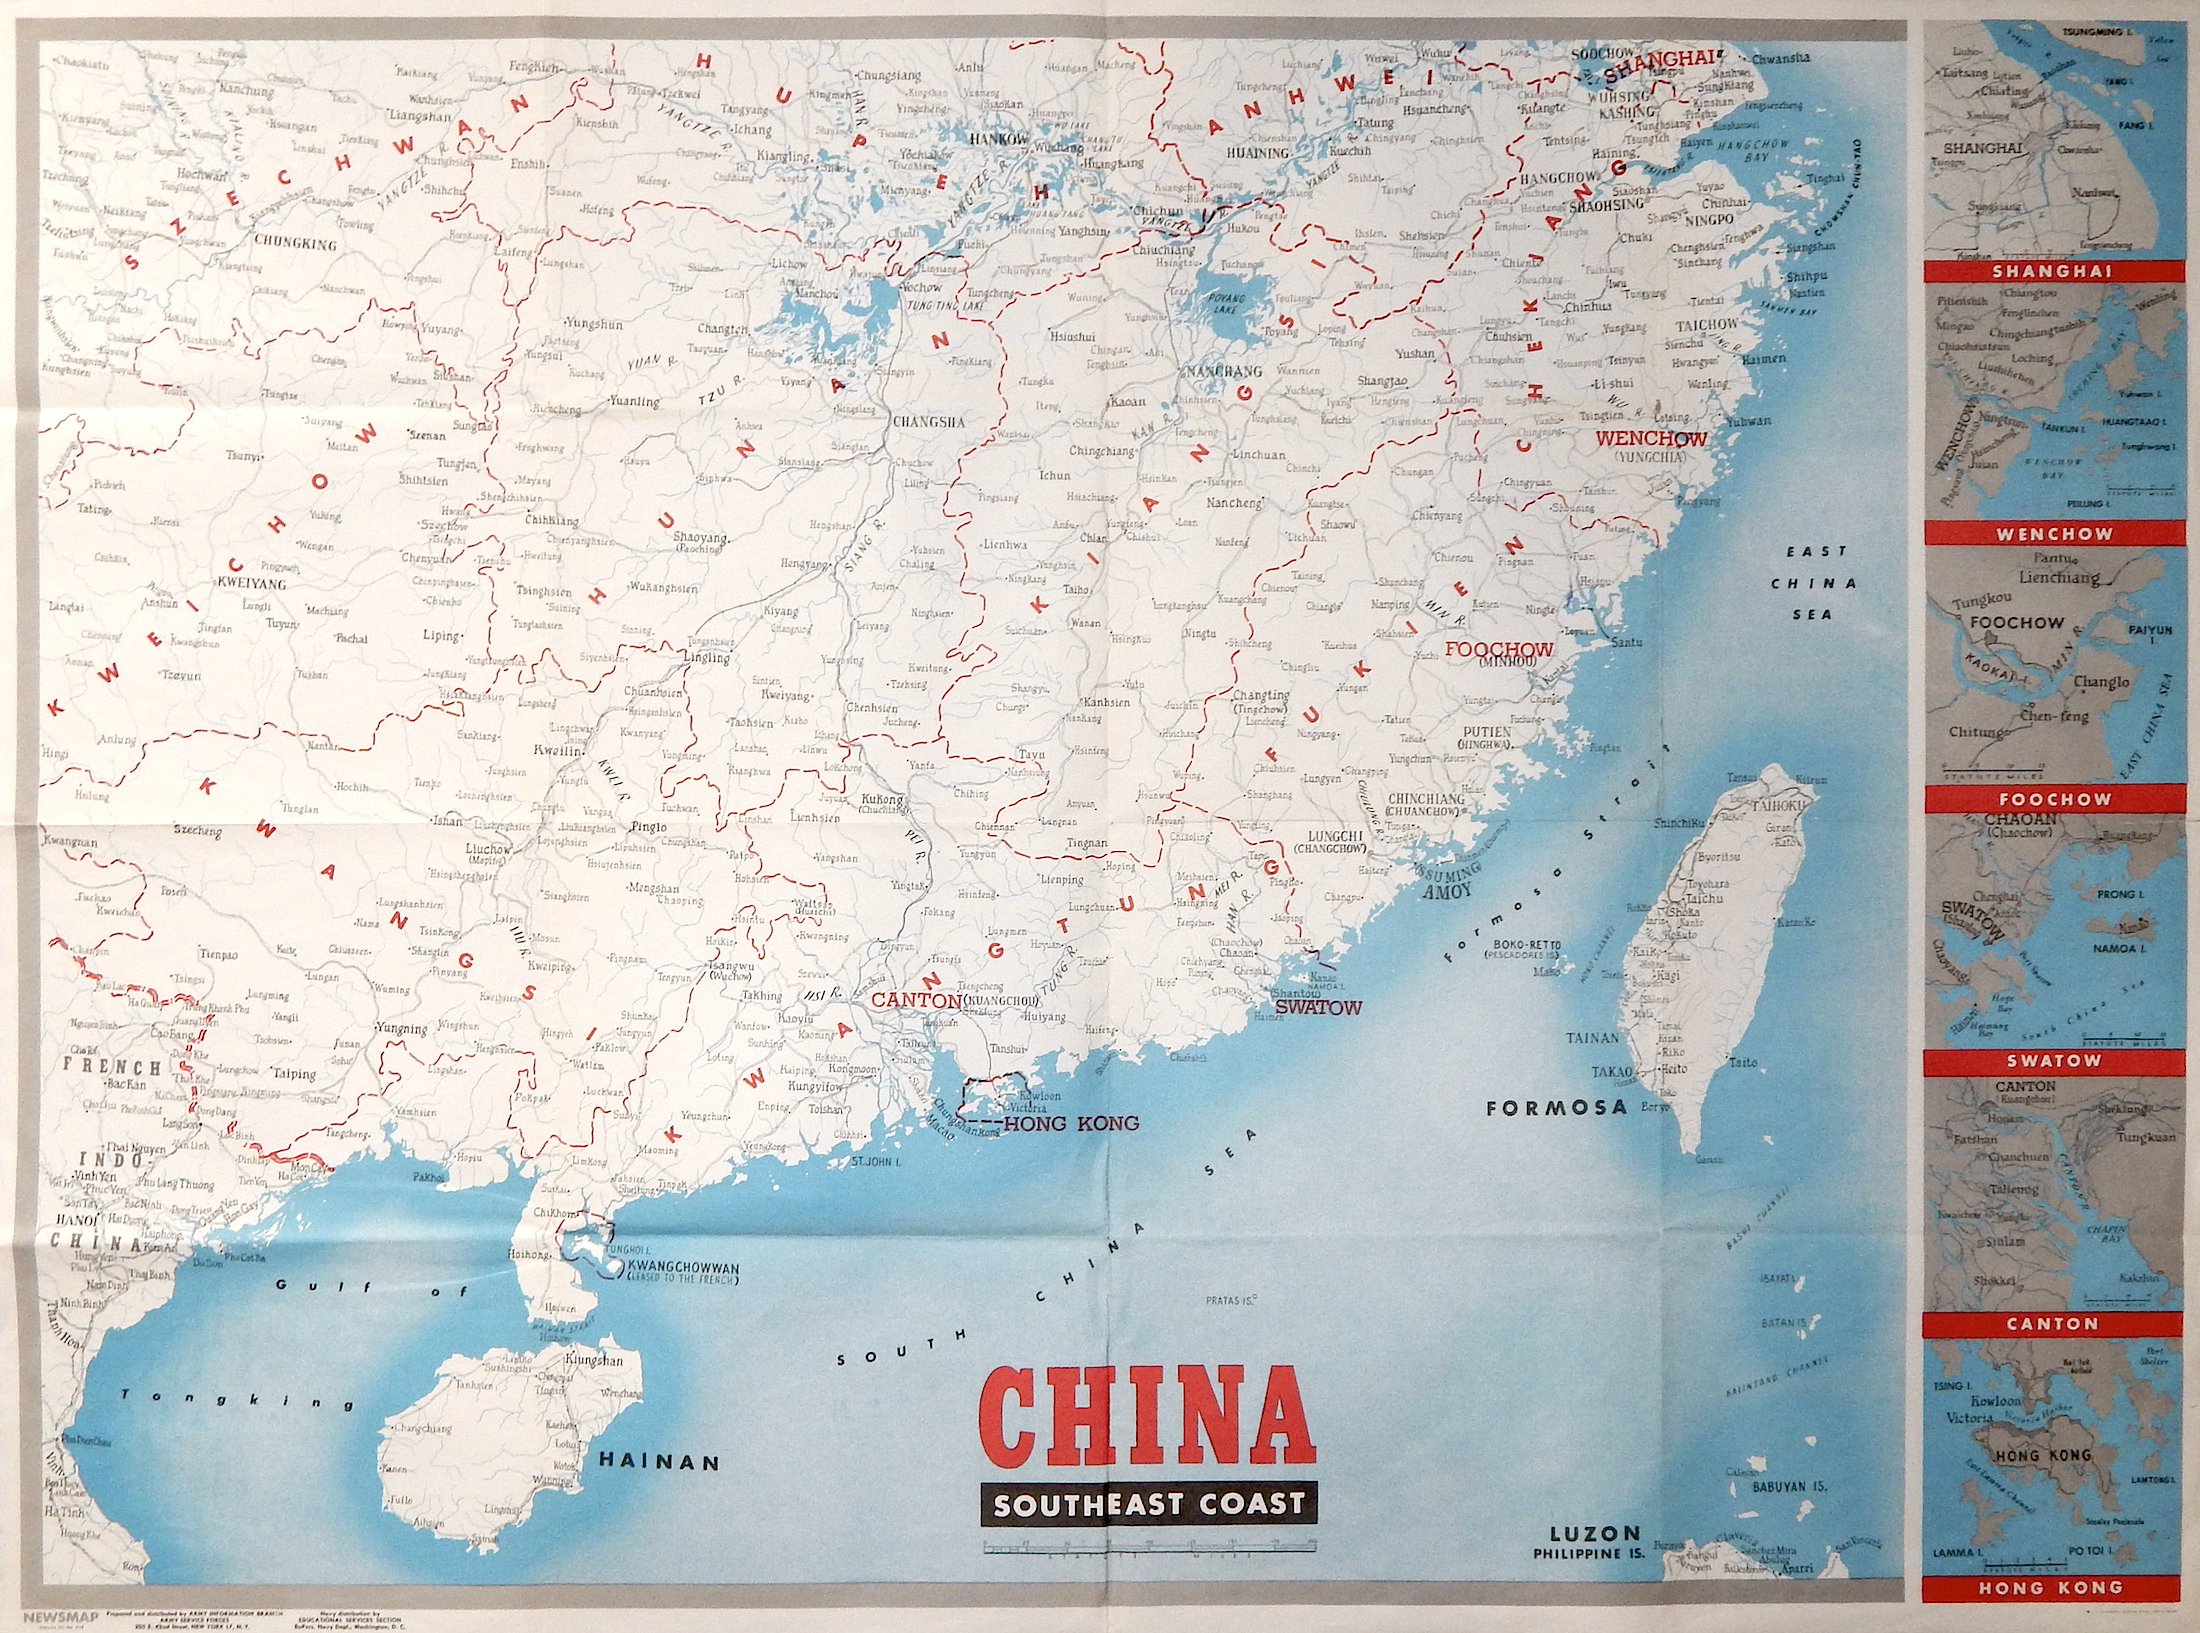 cina southeast coast